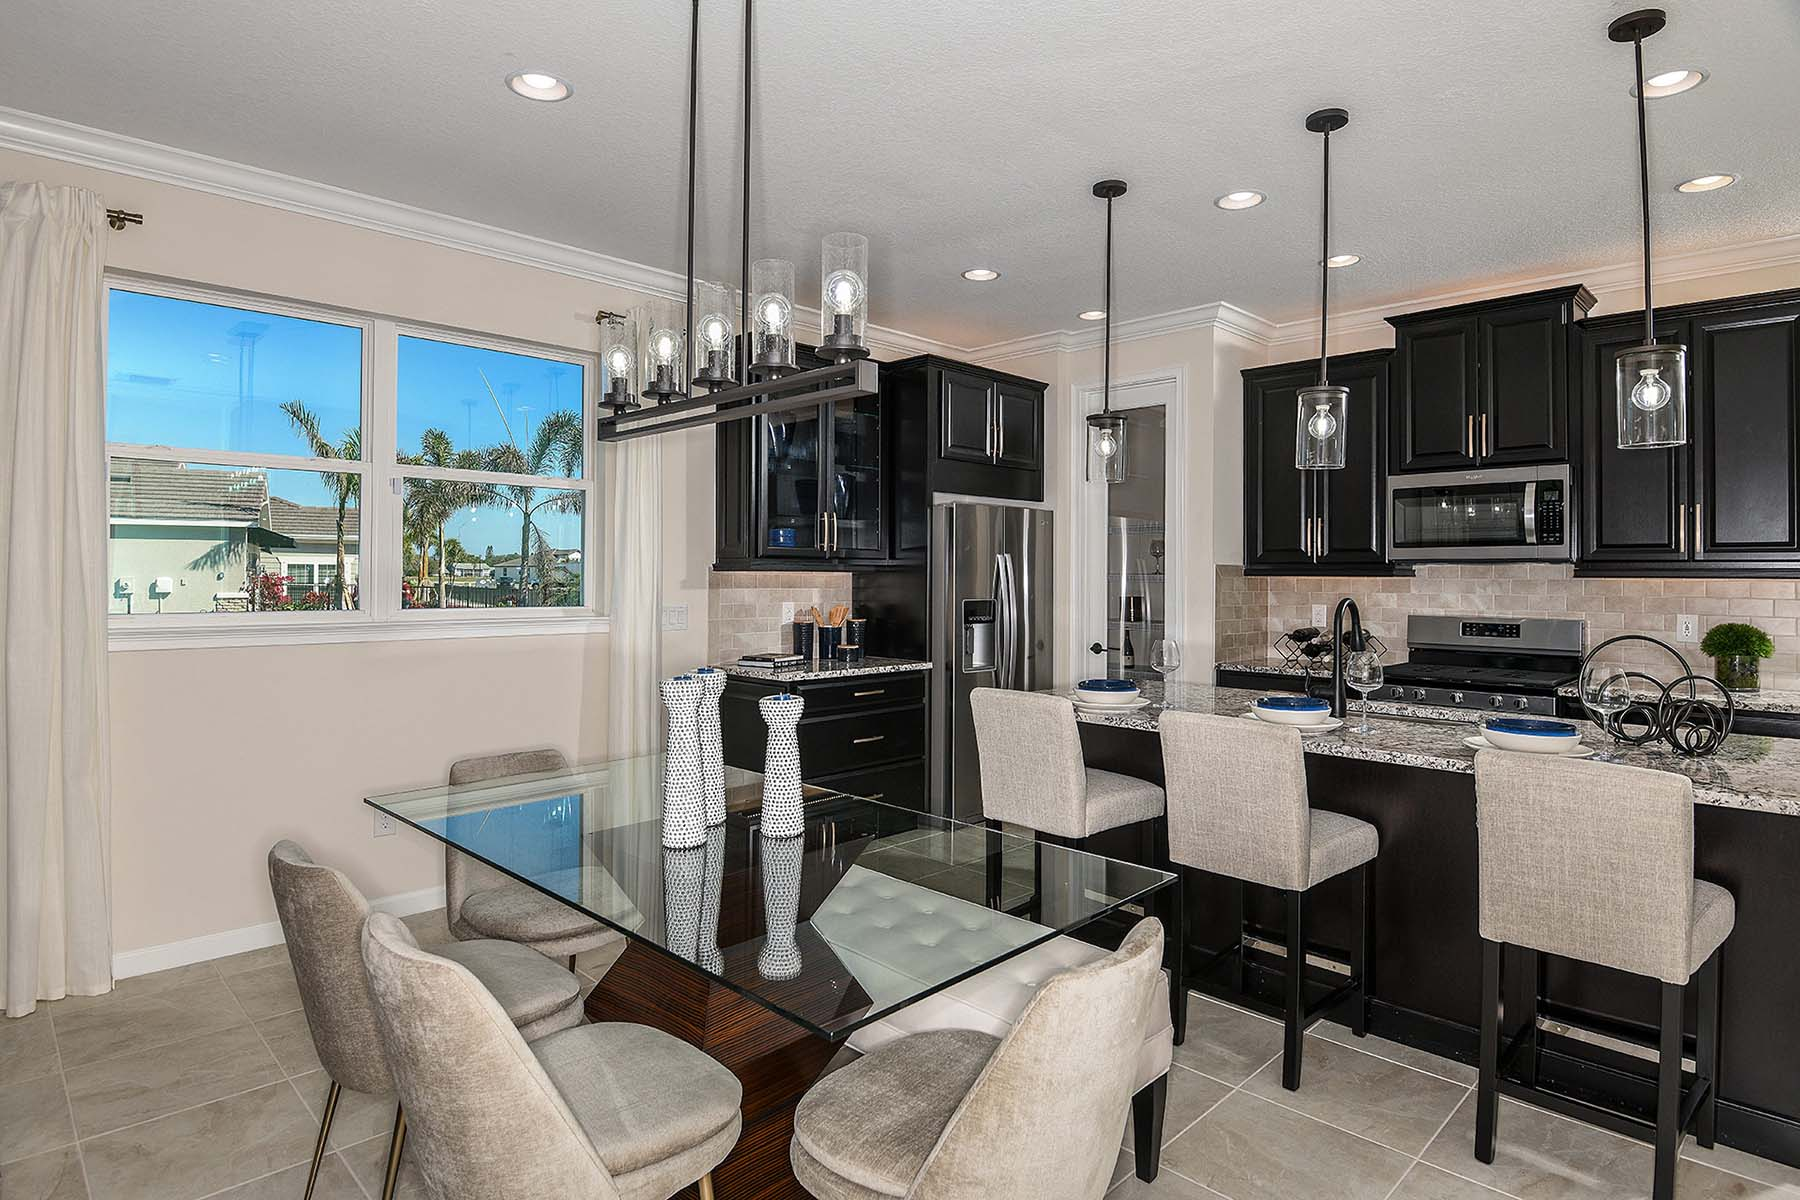 Bayport Plan Dining at Sunrise Preserve at Palmer Ranch in Sarasota Florida by Mattamy Homes